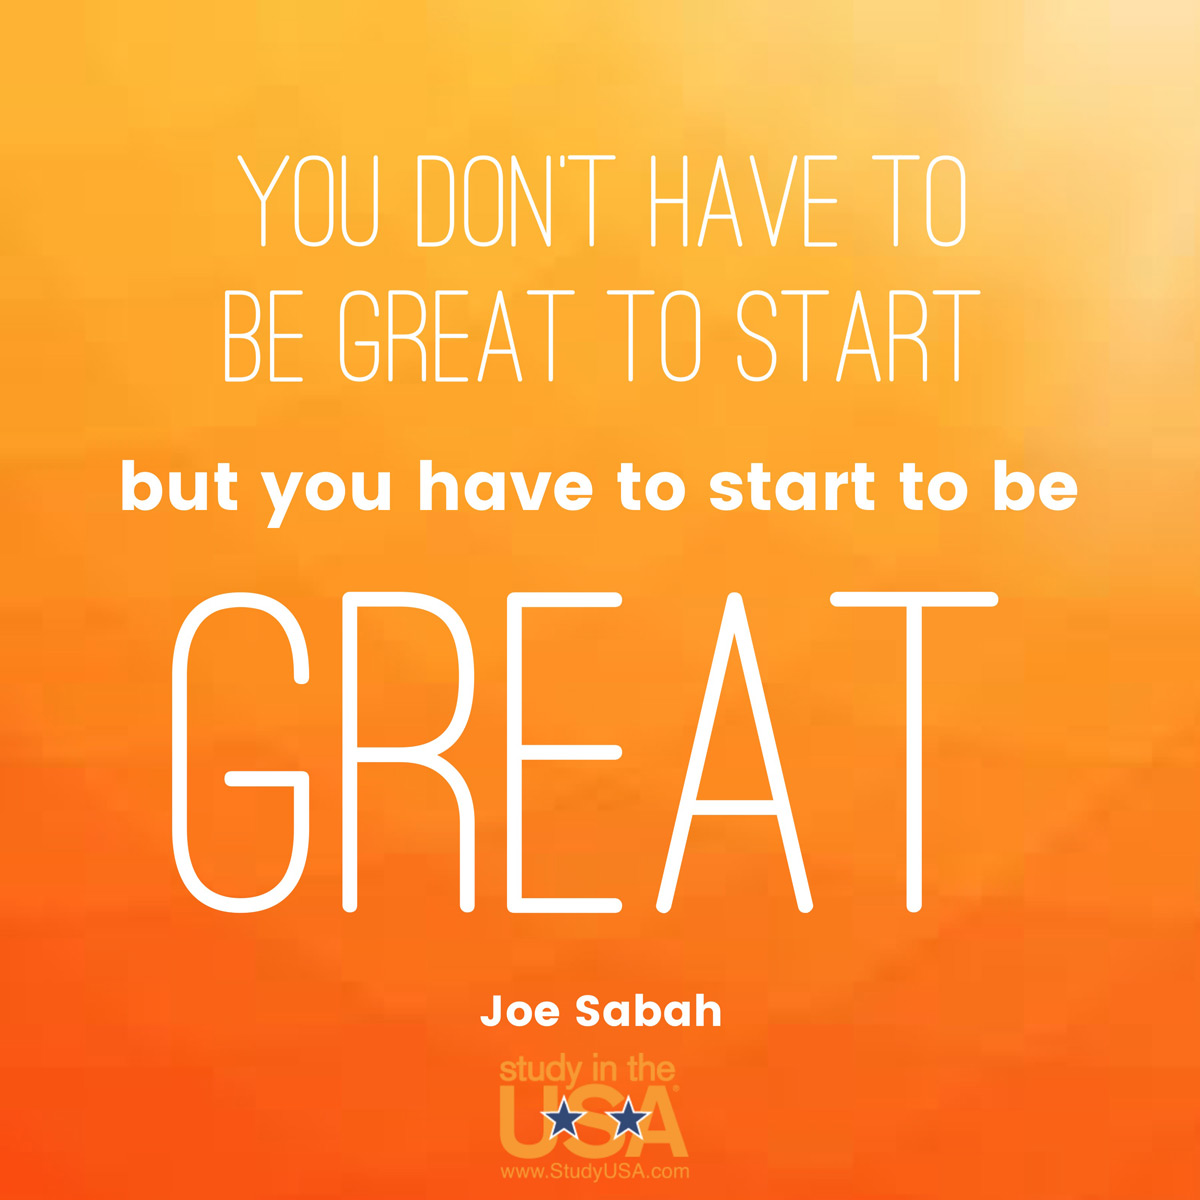 blog Image Monday Quote by Joe Sabah